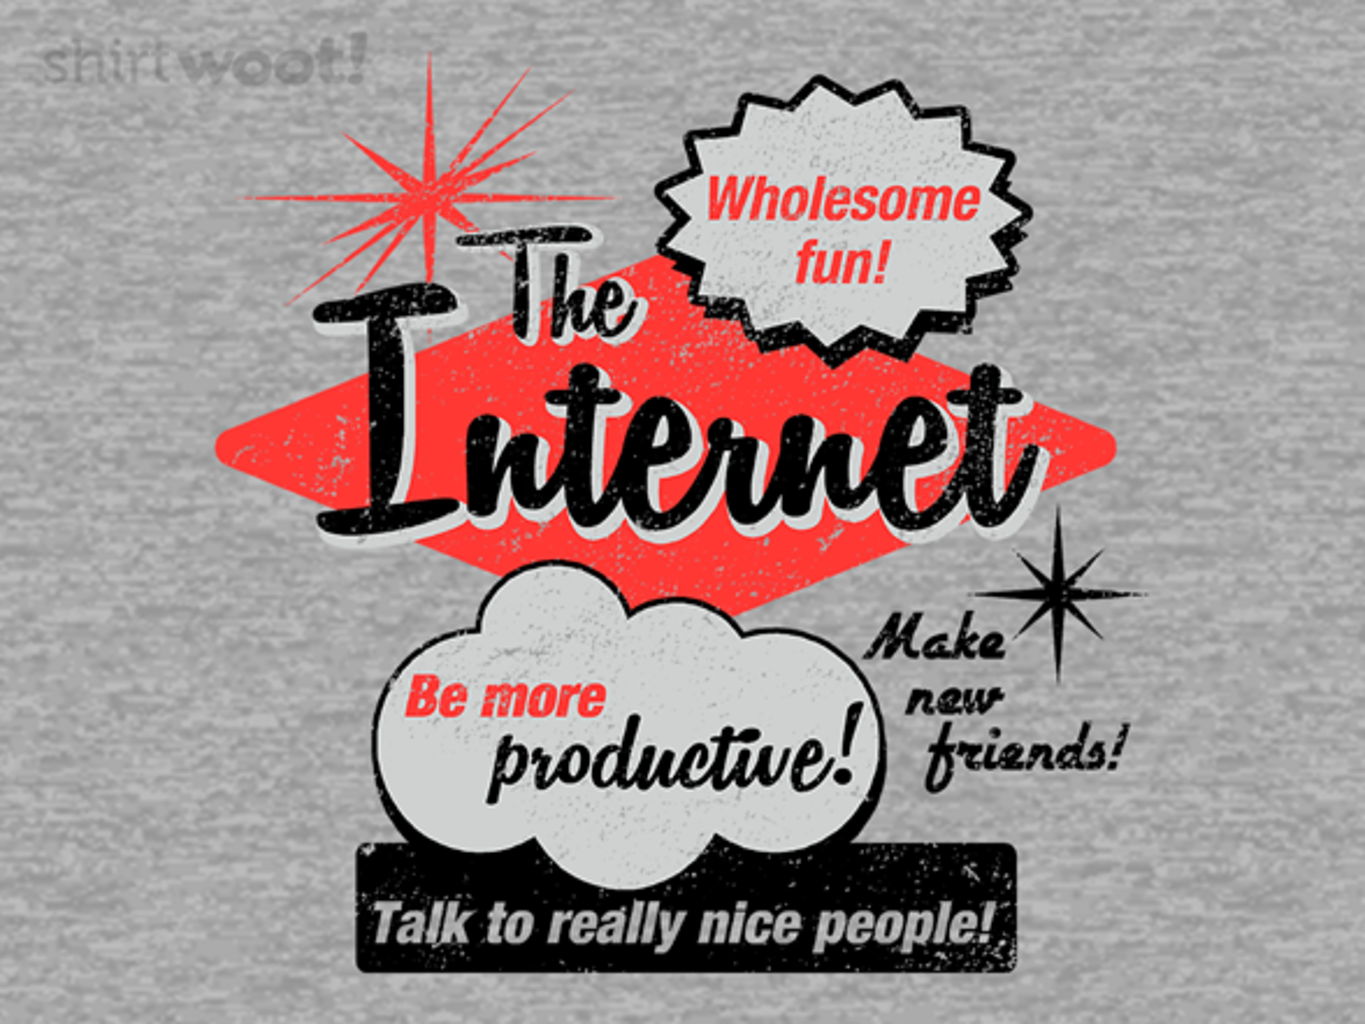 Woot!: The Internet